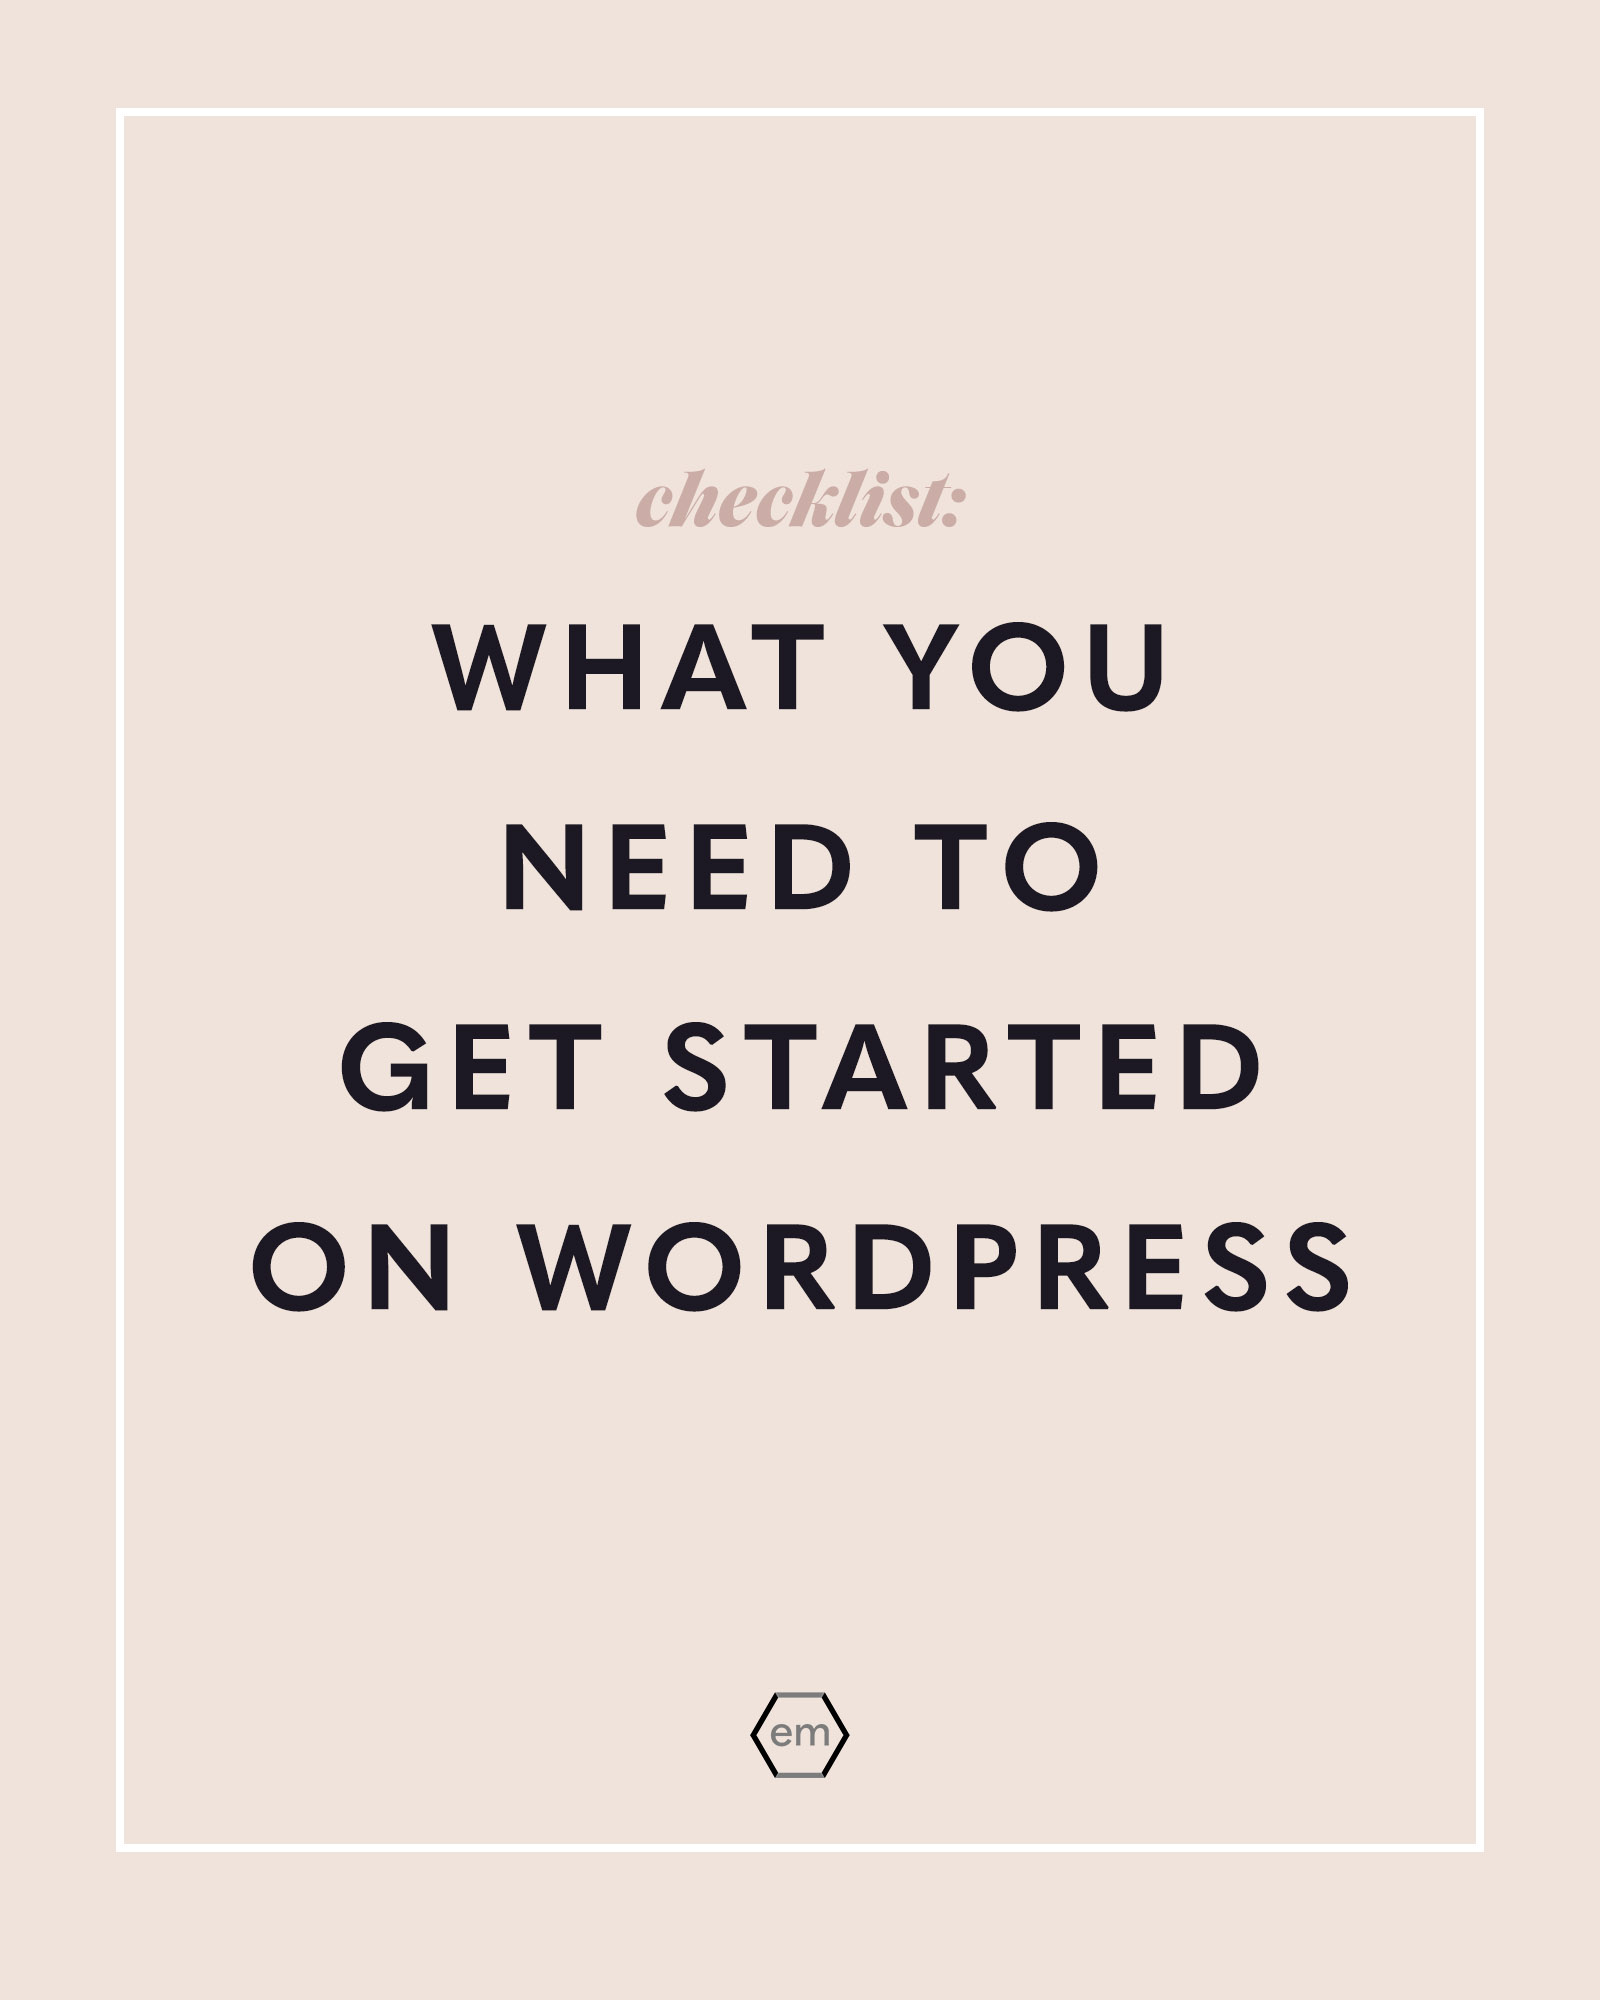 everything you need to get started on wordpress